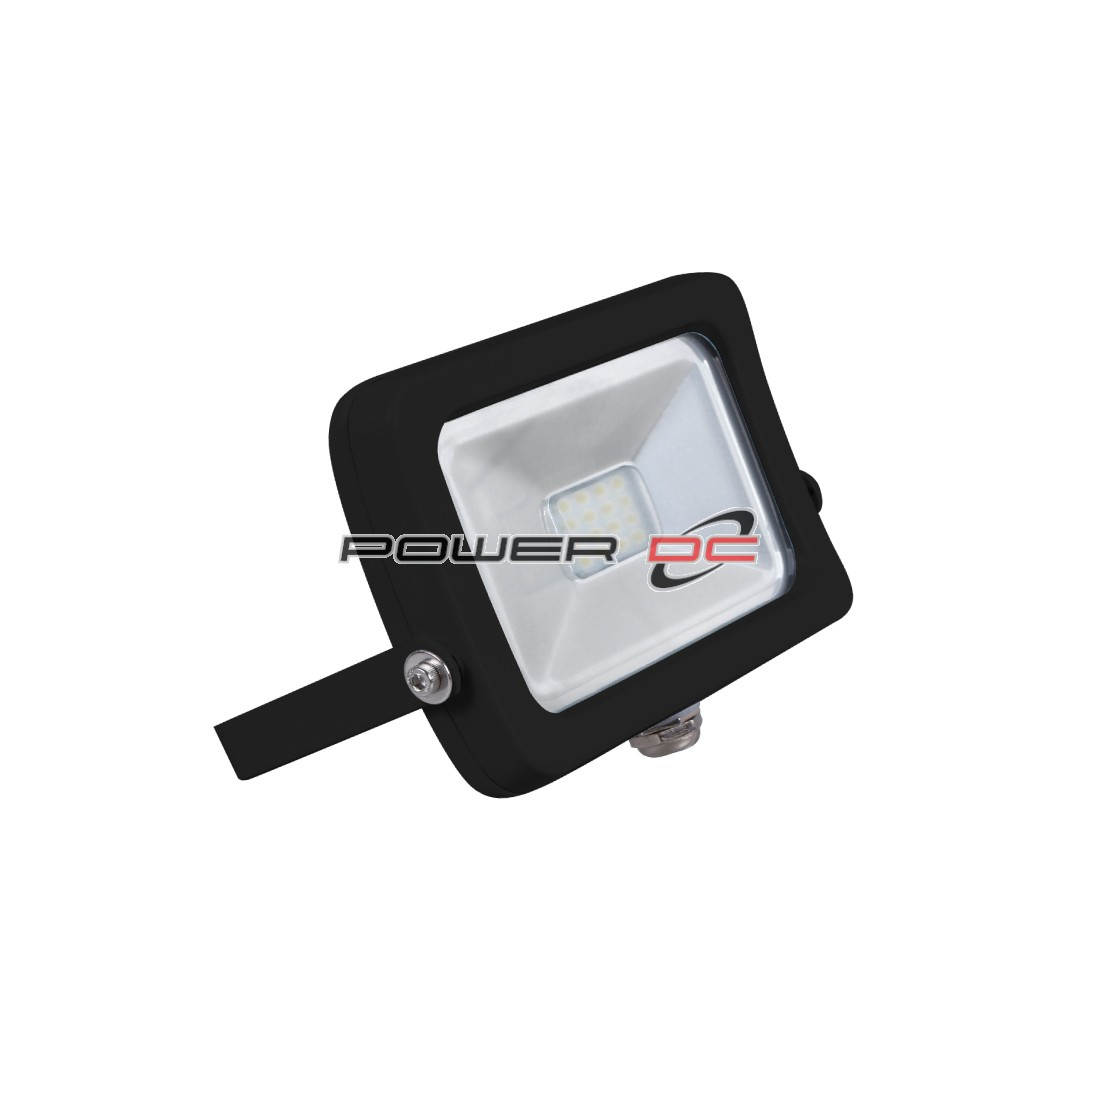 ULTRACHARGE WALL MOUNT LED FLOOD LIGHT 10WATT BLACK